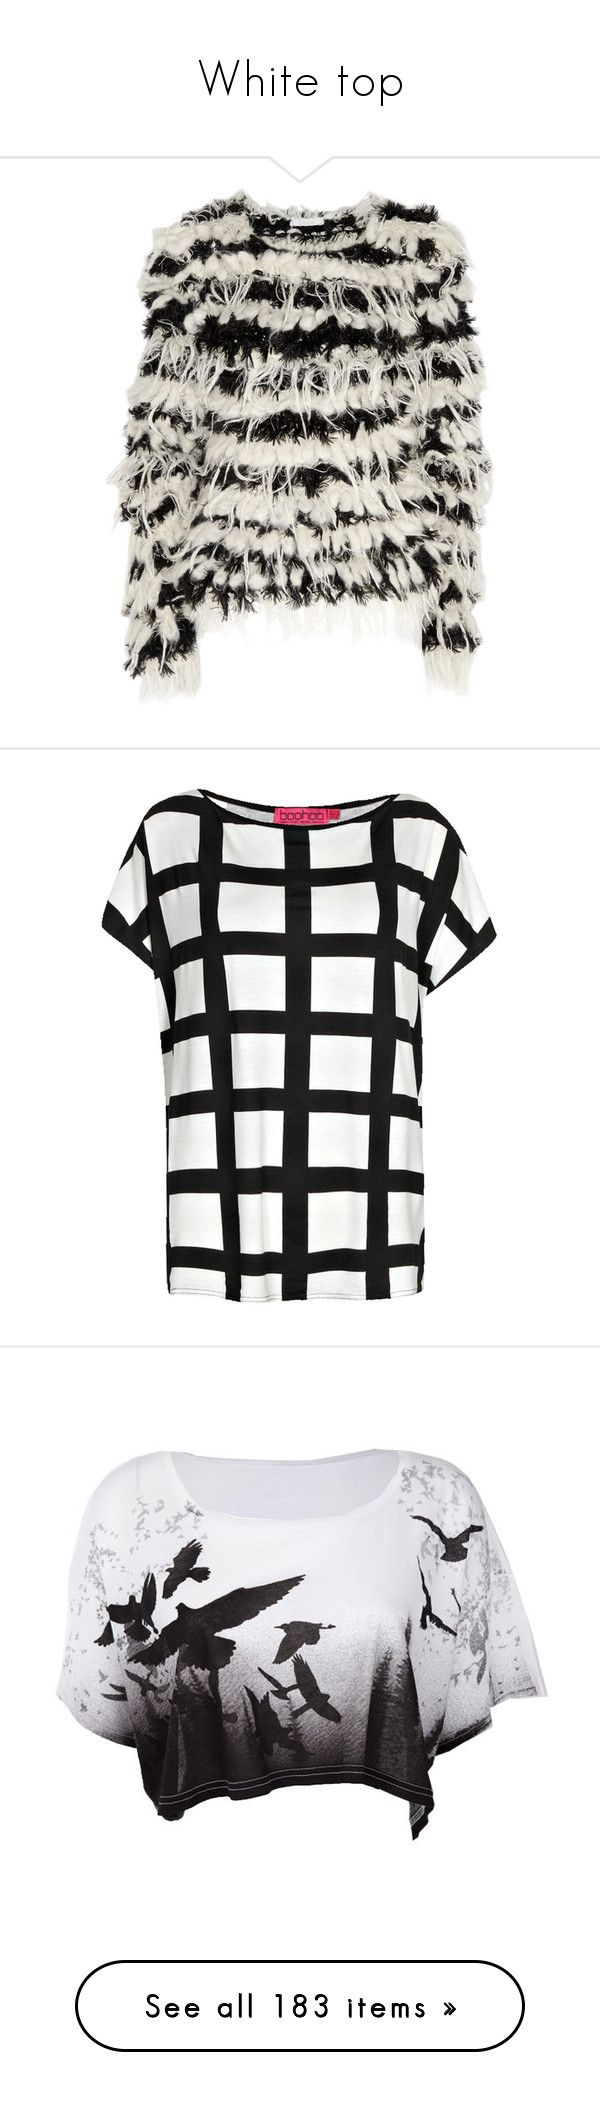 """""""White top"""" by tiffaninorway ❤ liked on Polyvore featuring tops, sweaters, jumpers, outerwear, black and white top, black white sweater, black white top, chunky knit sweater, black and white jumper and t-shirts"""